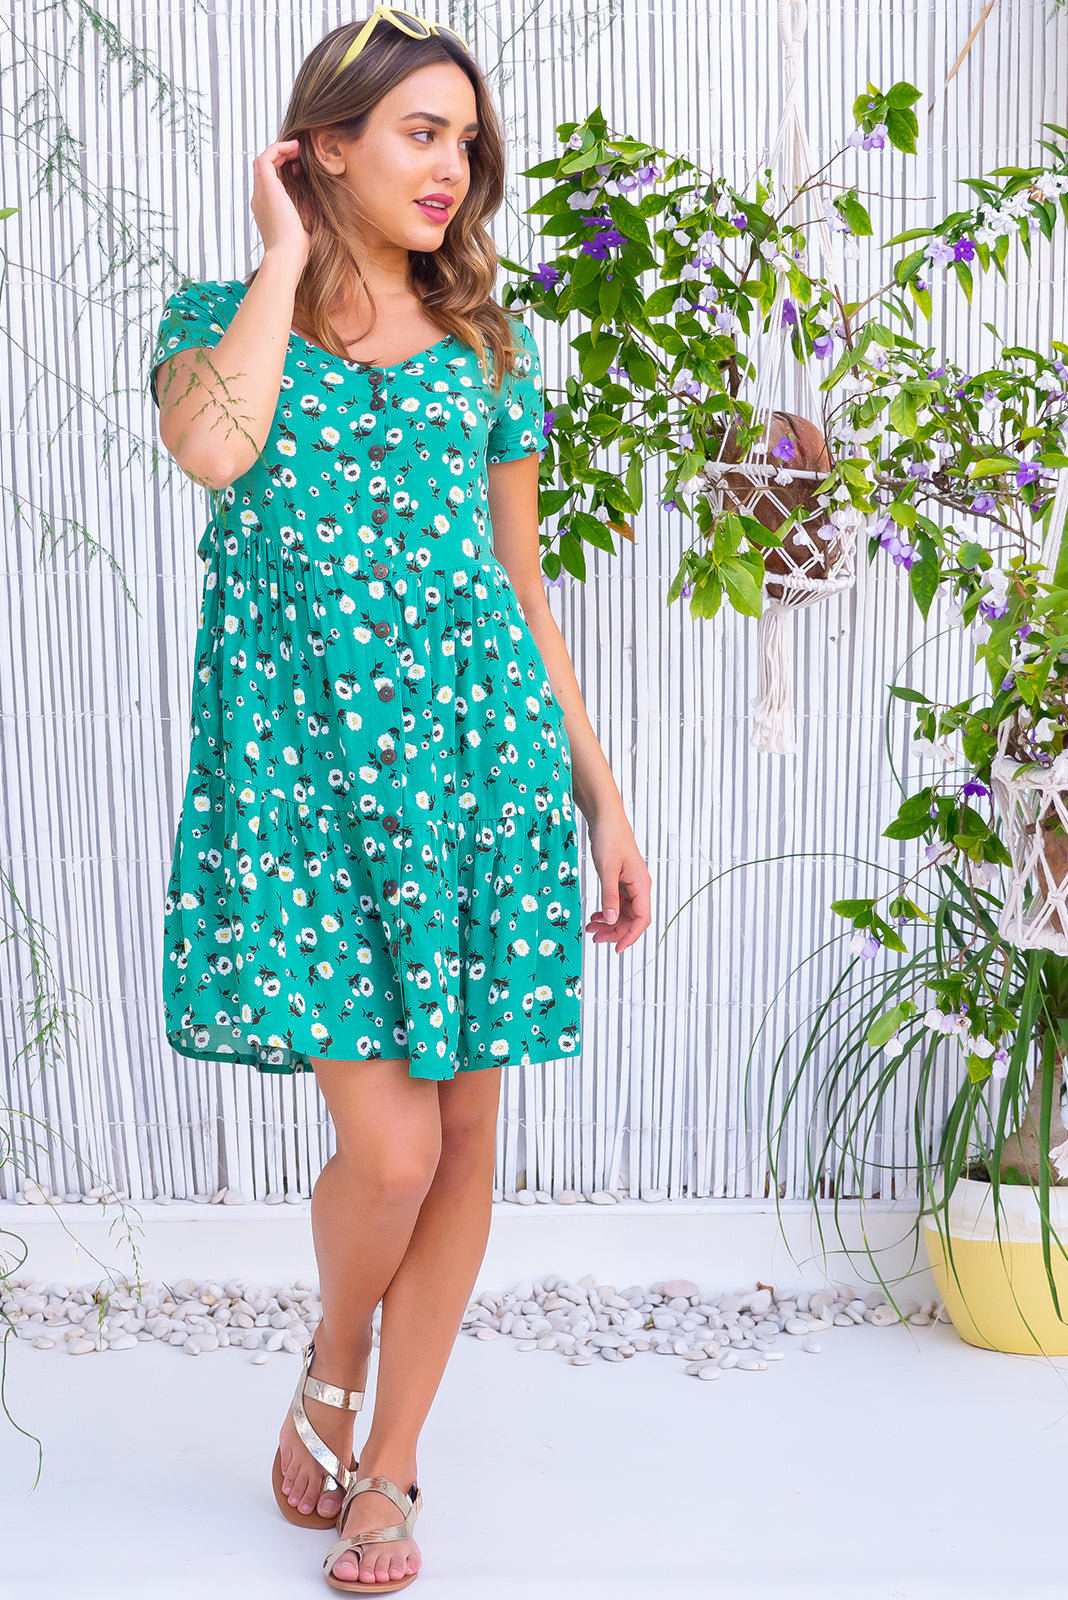 The Georgie Jade Garden Dress features functional button front, adjustable side tabs, side pockets, frilled hem and 100% rayon in green base with floral print.